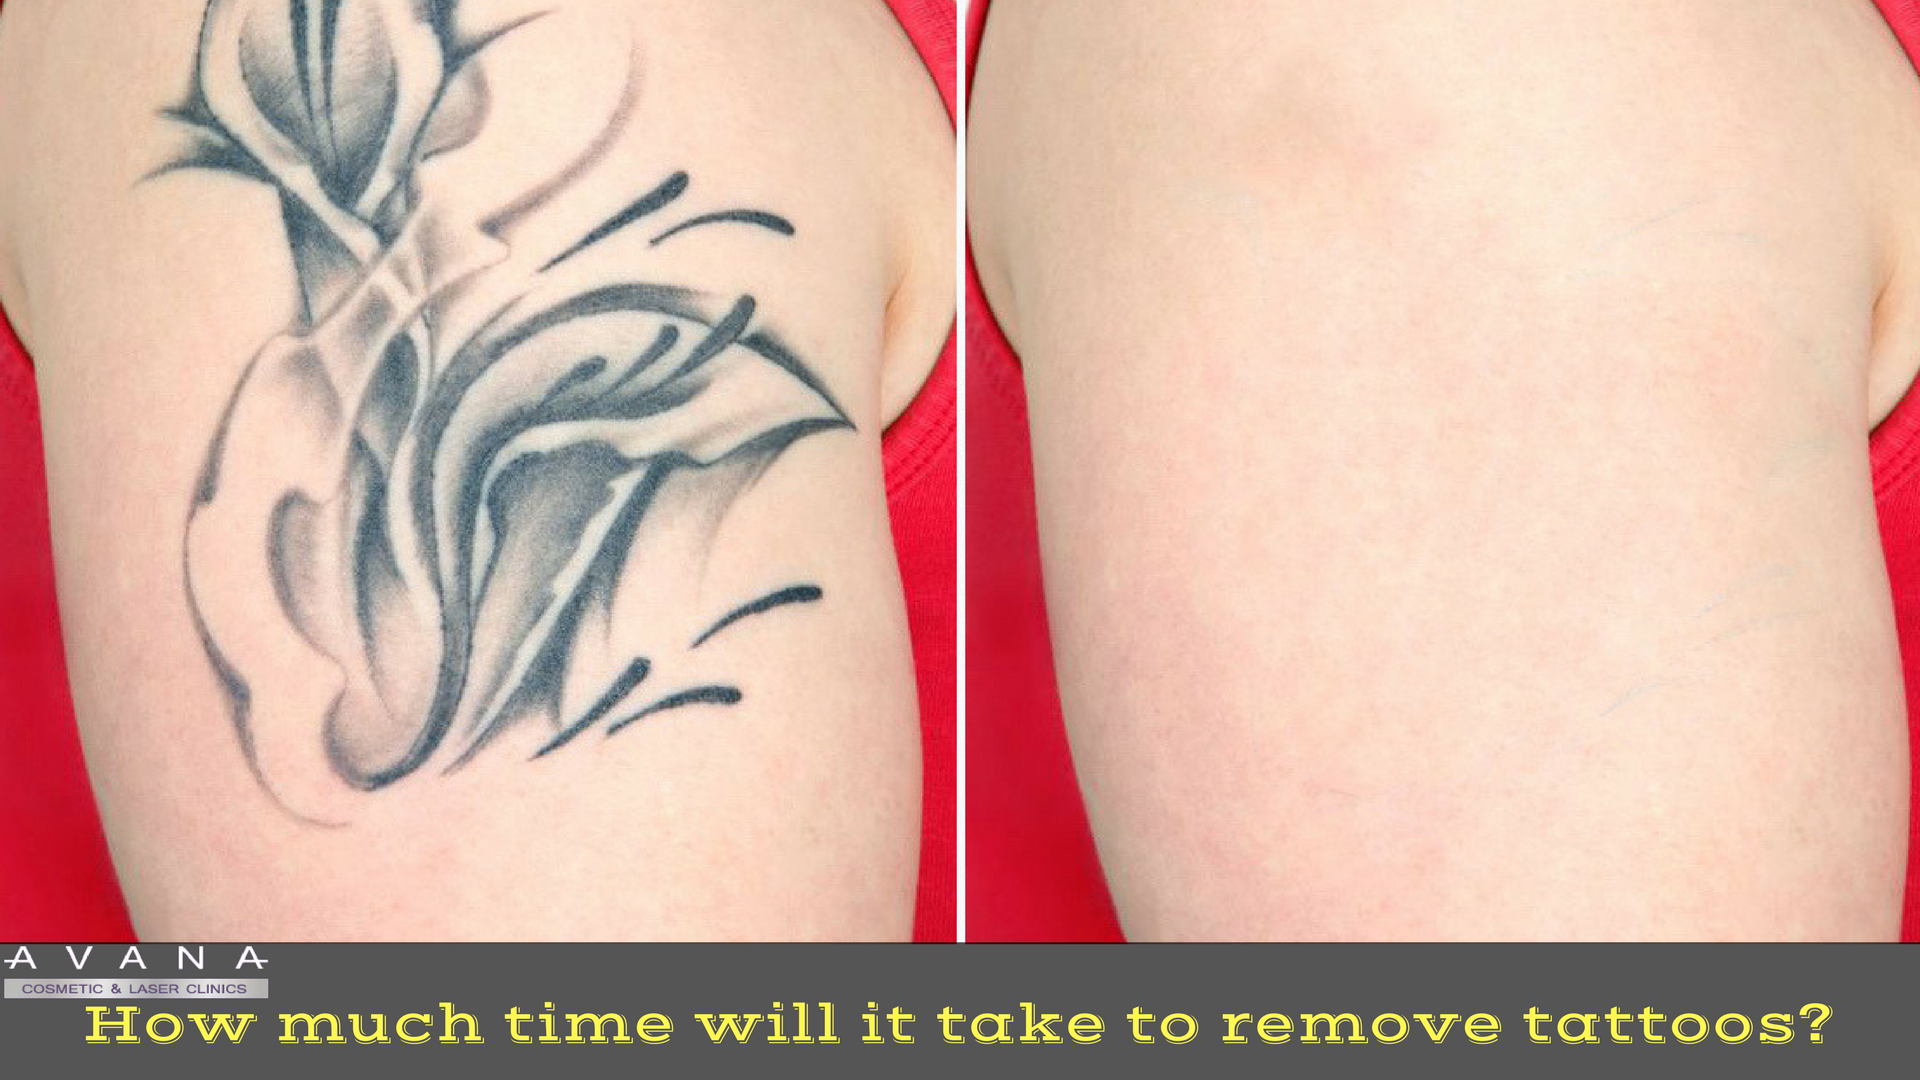 How much time will it take to remove tattoos?